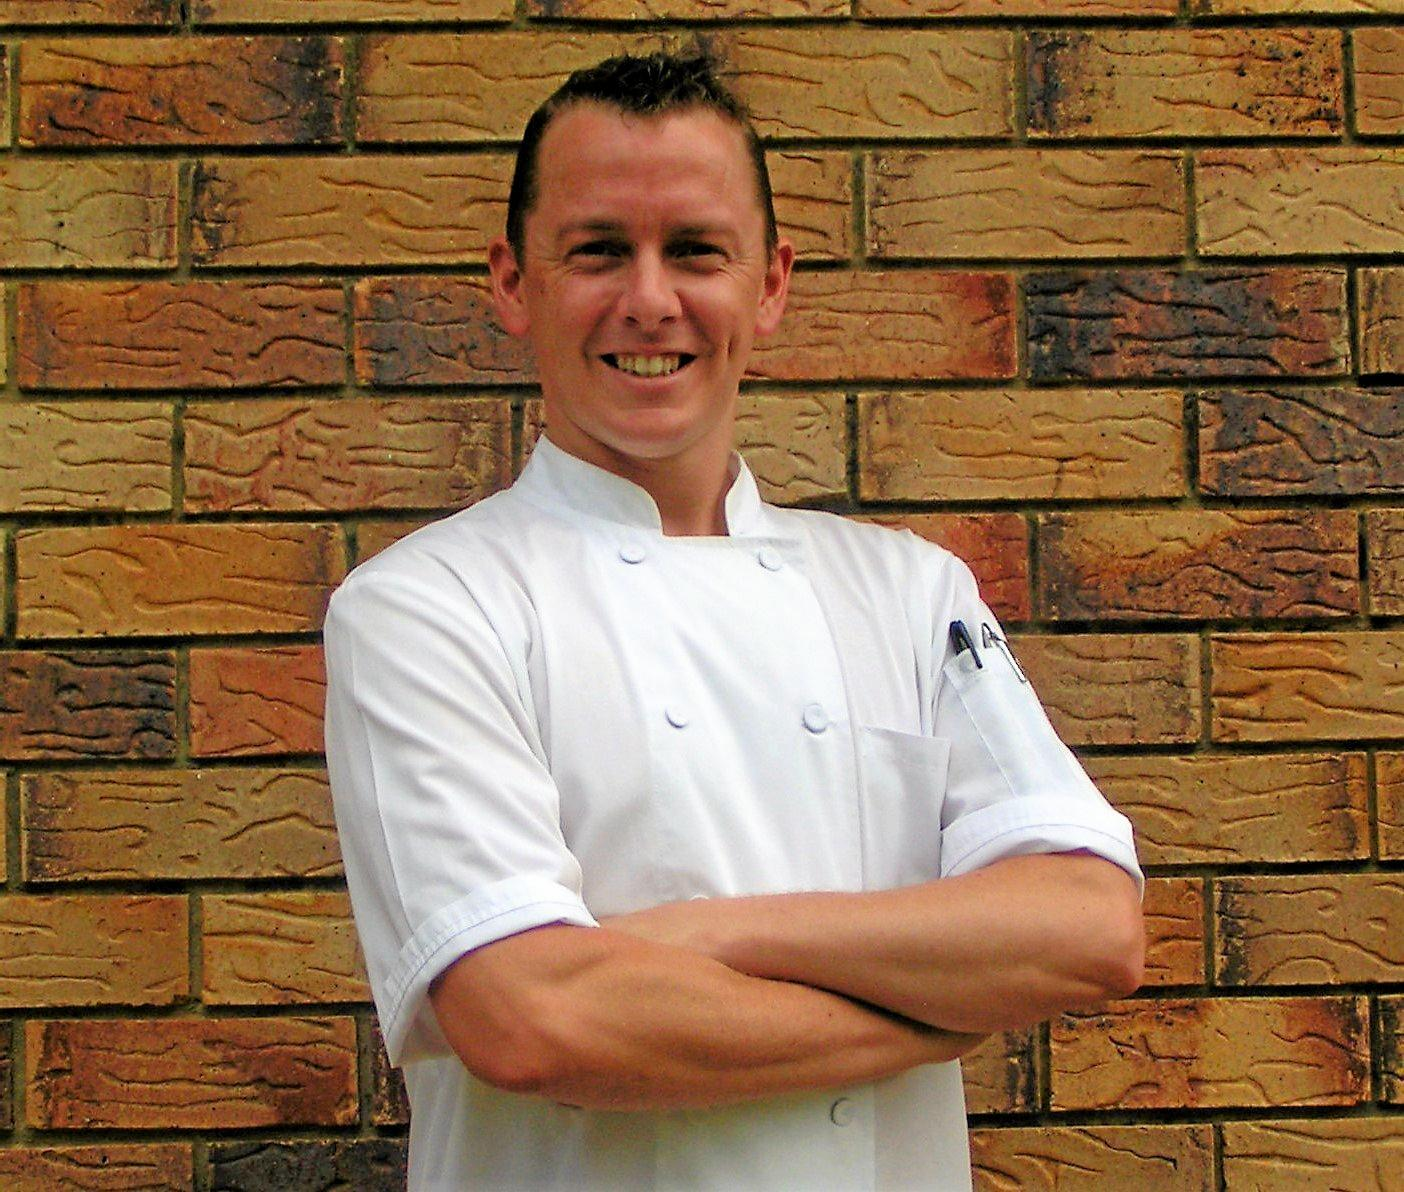 Kaine Hunt will be starring as a guest chef at this year's Eat the Street. Photo Contributed